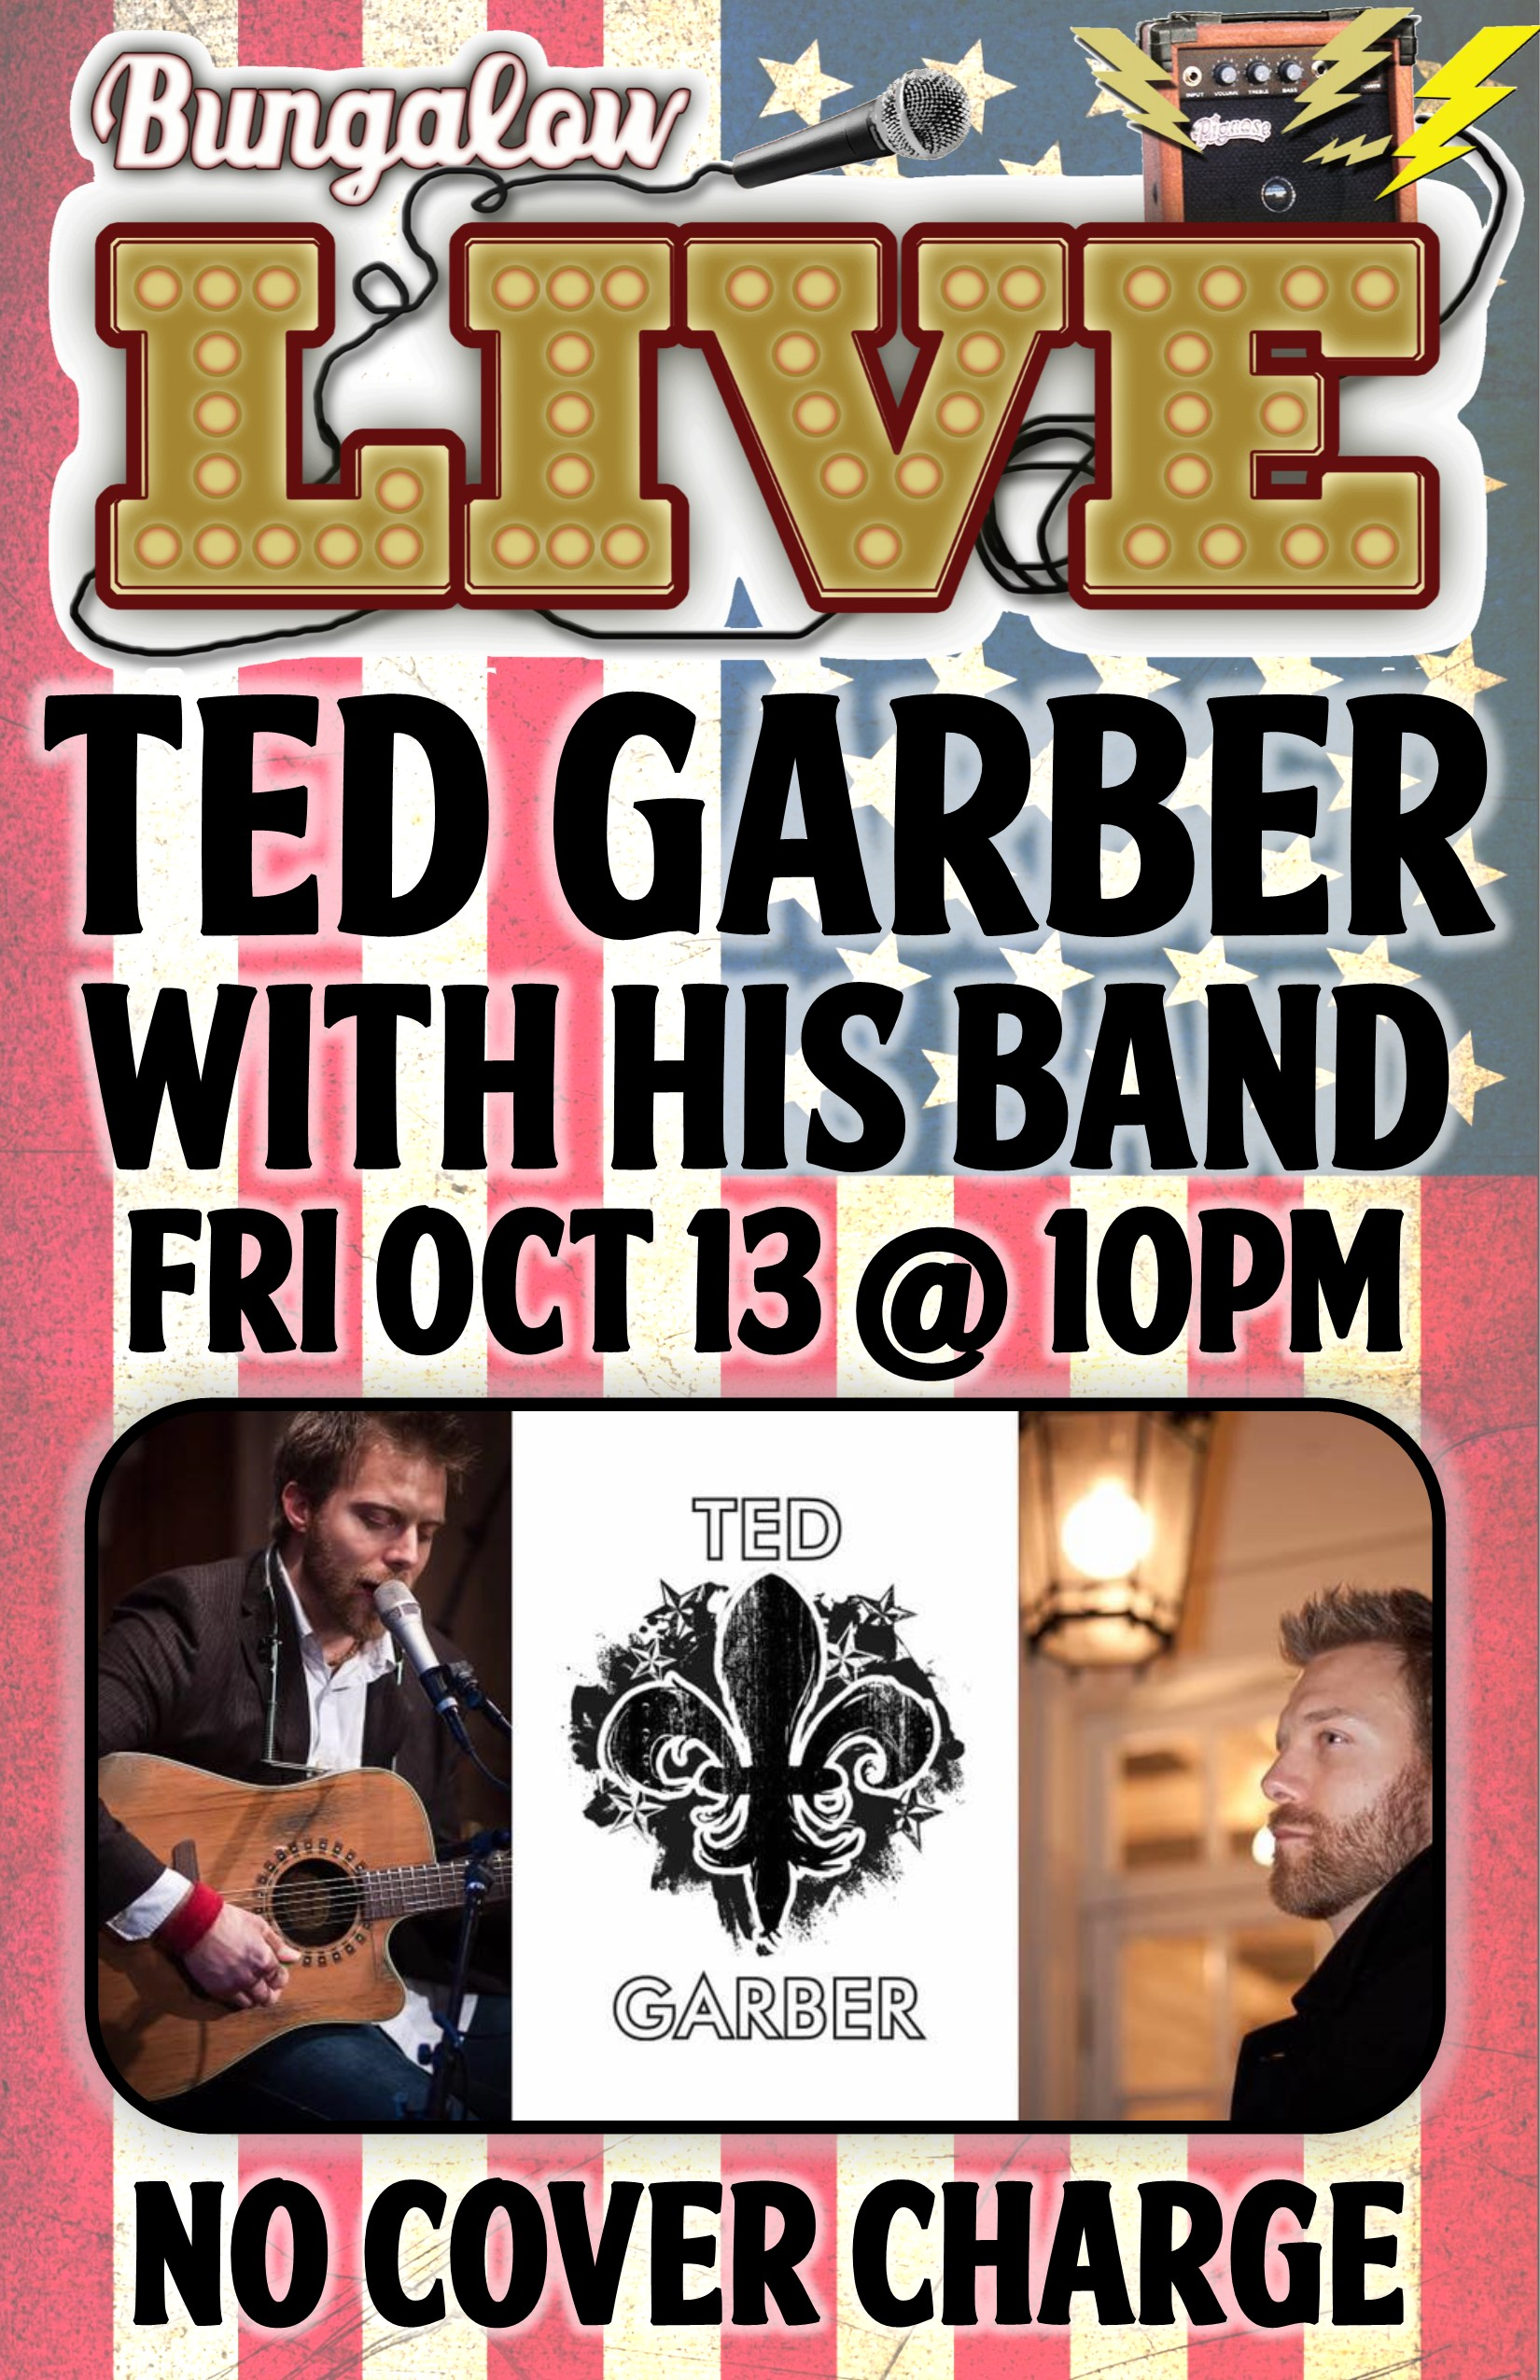 Ted garber band Oct 11X17